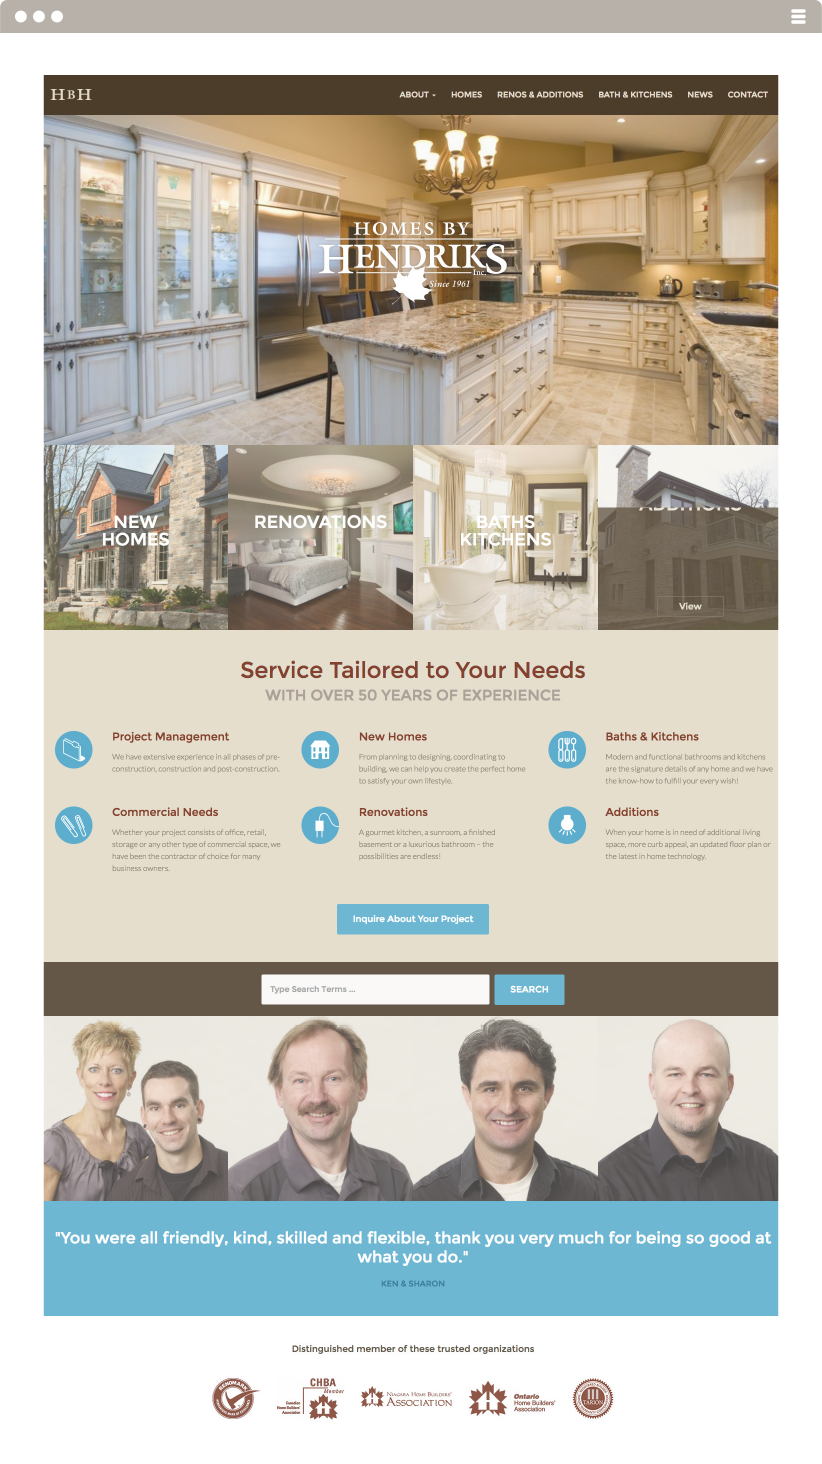 Homes by Hendriks Website Made By Frame